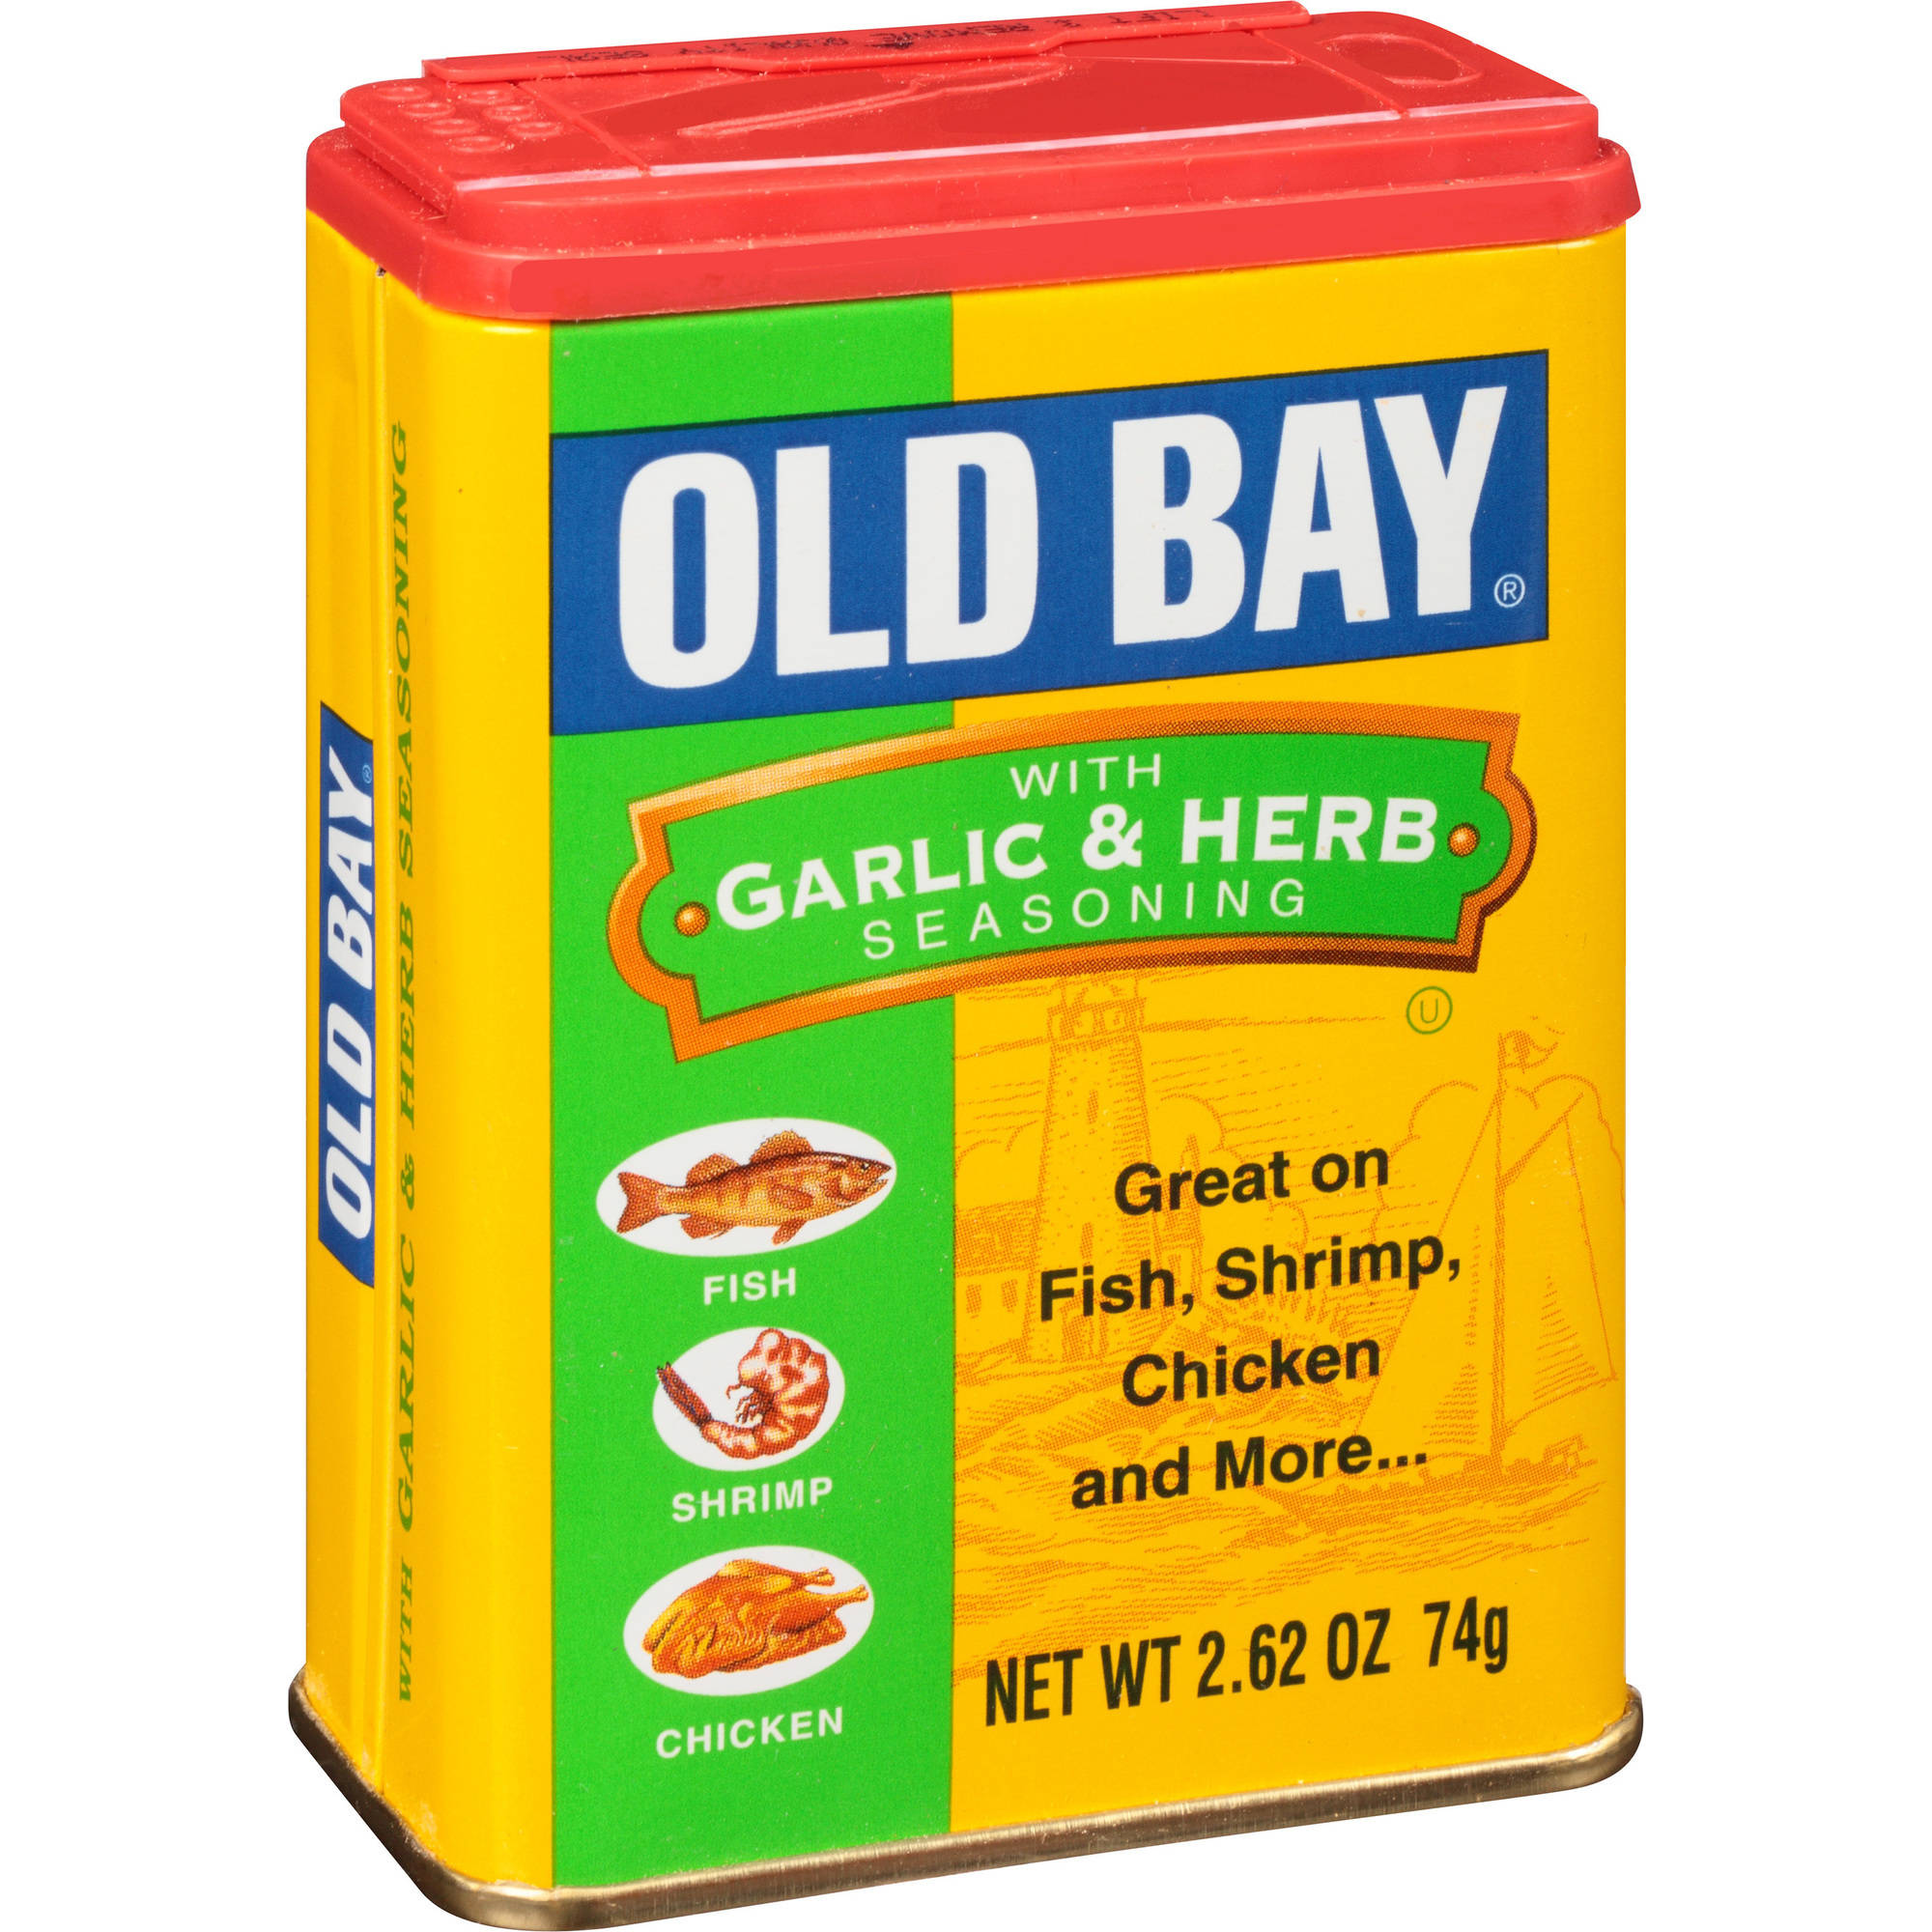 Old Bay With Garlic & Herb Seasoning, 2.62 oz